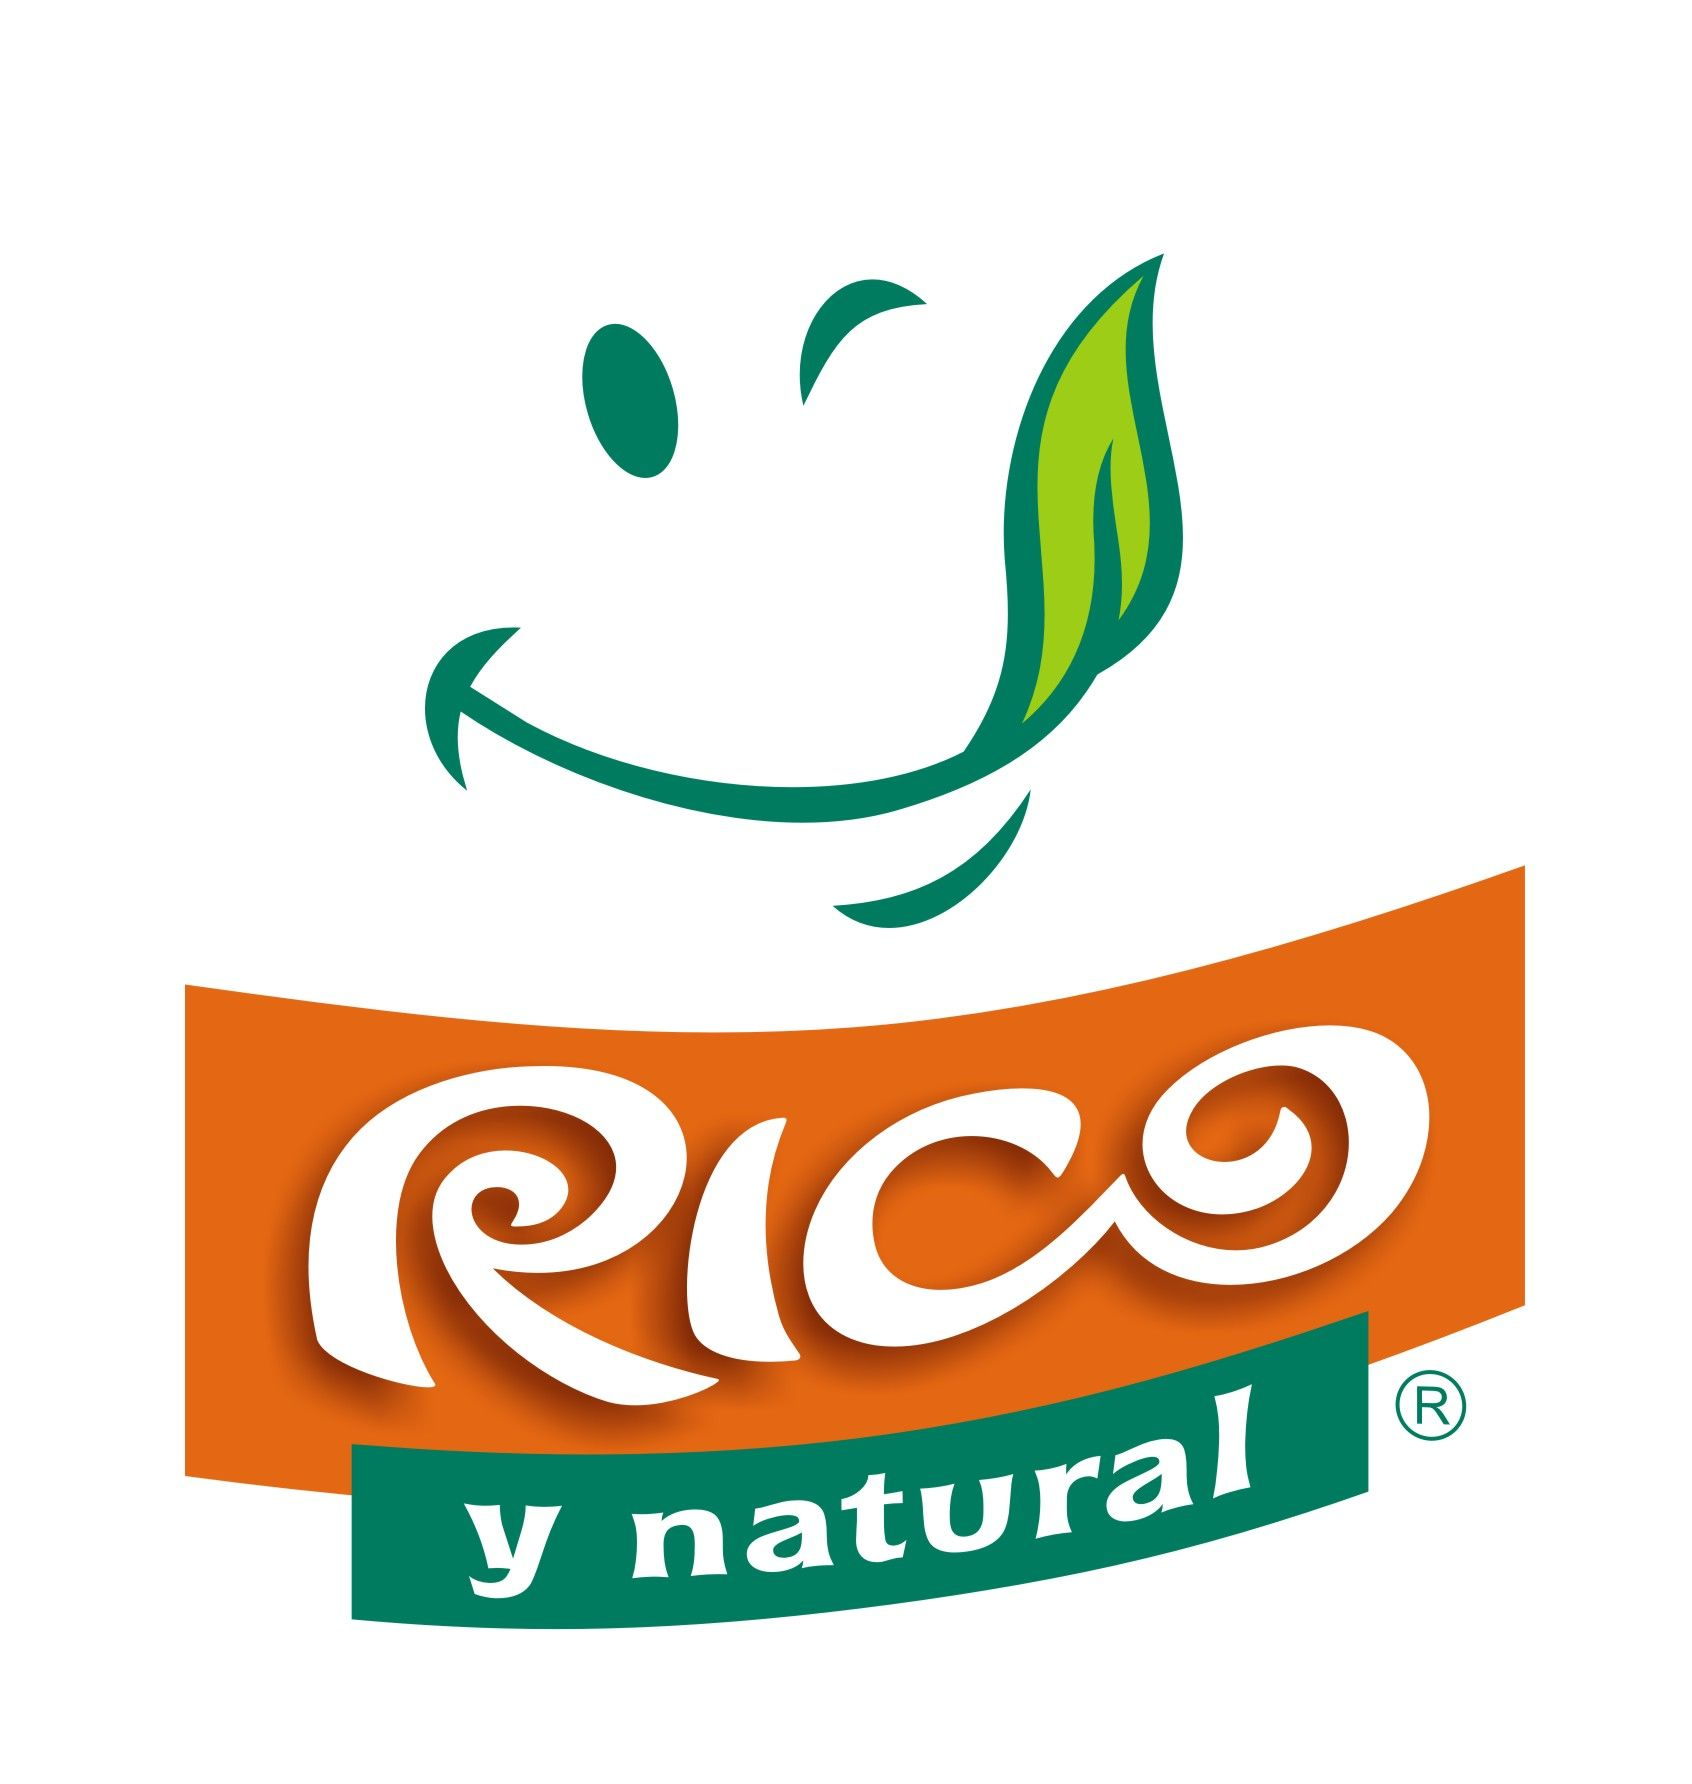 Rico y sano food logo pinterest food logos and logos for Cuisine logo